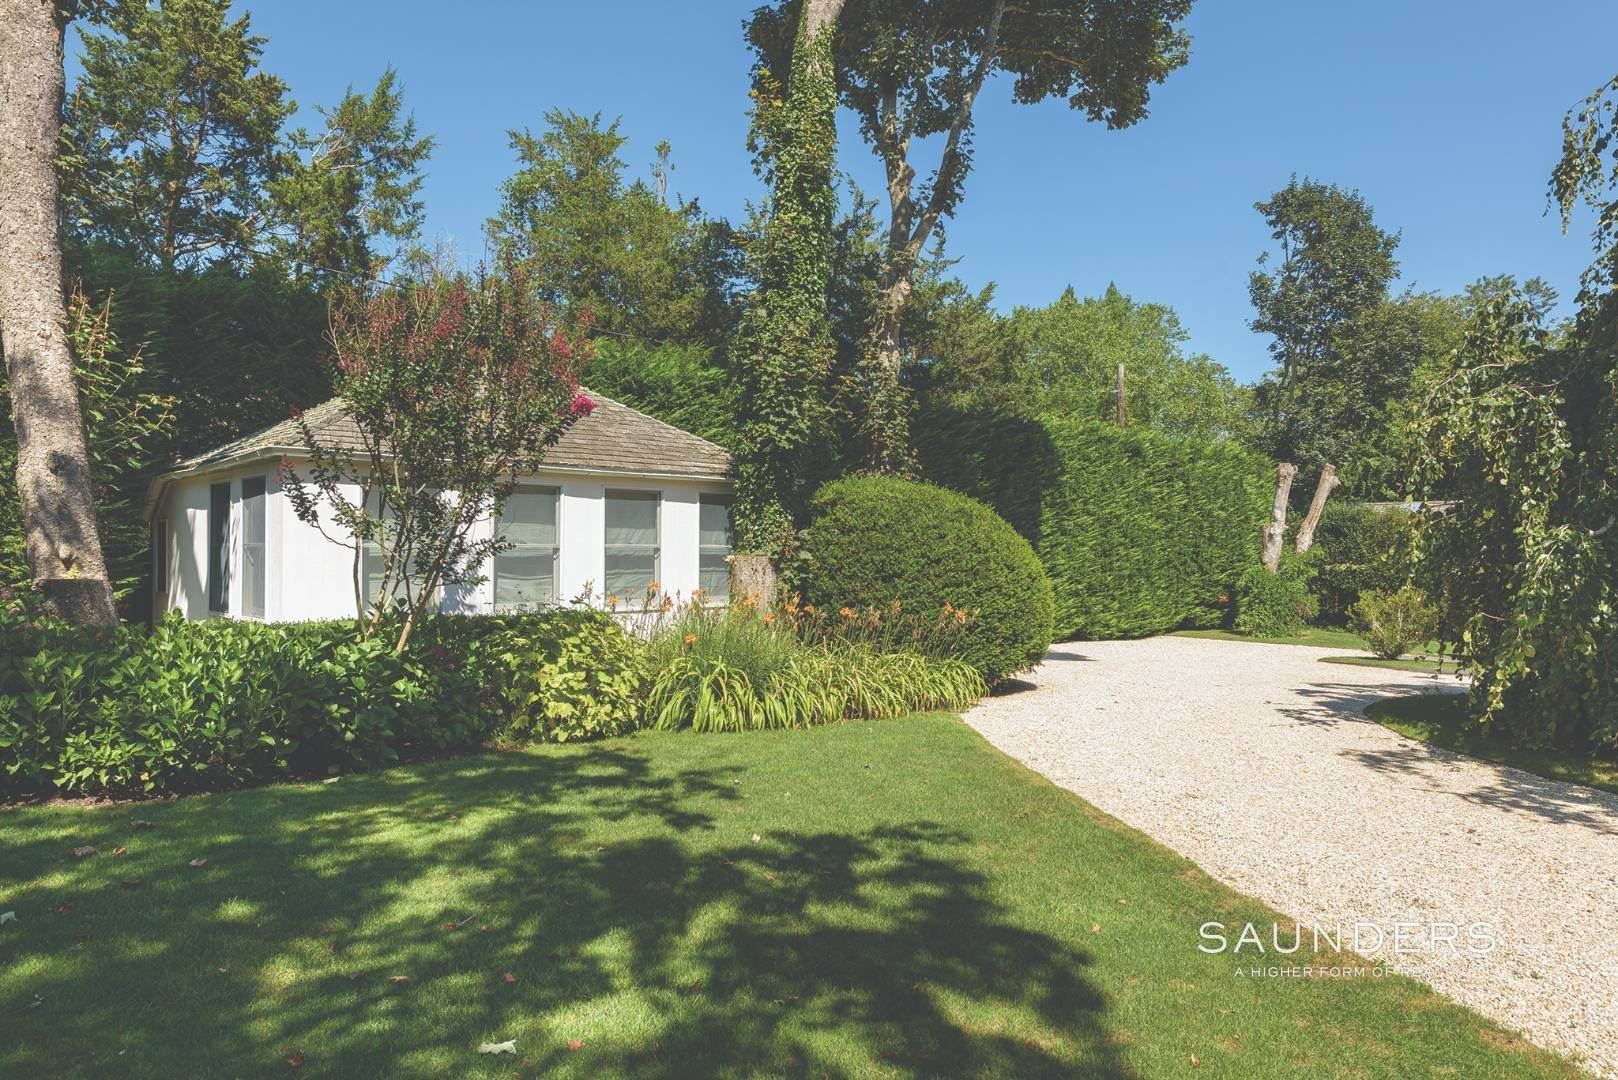 19. Single Family Homes for Sale at Designer-Owned Villa In East Hampton Village Estate Section 46 Woods Lane, East Hampton, East Hampton Town, NY 11937